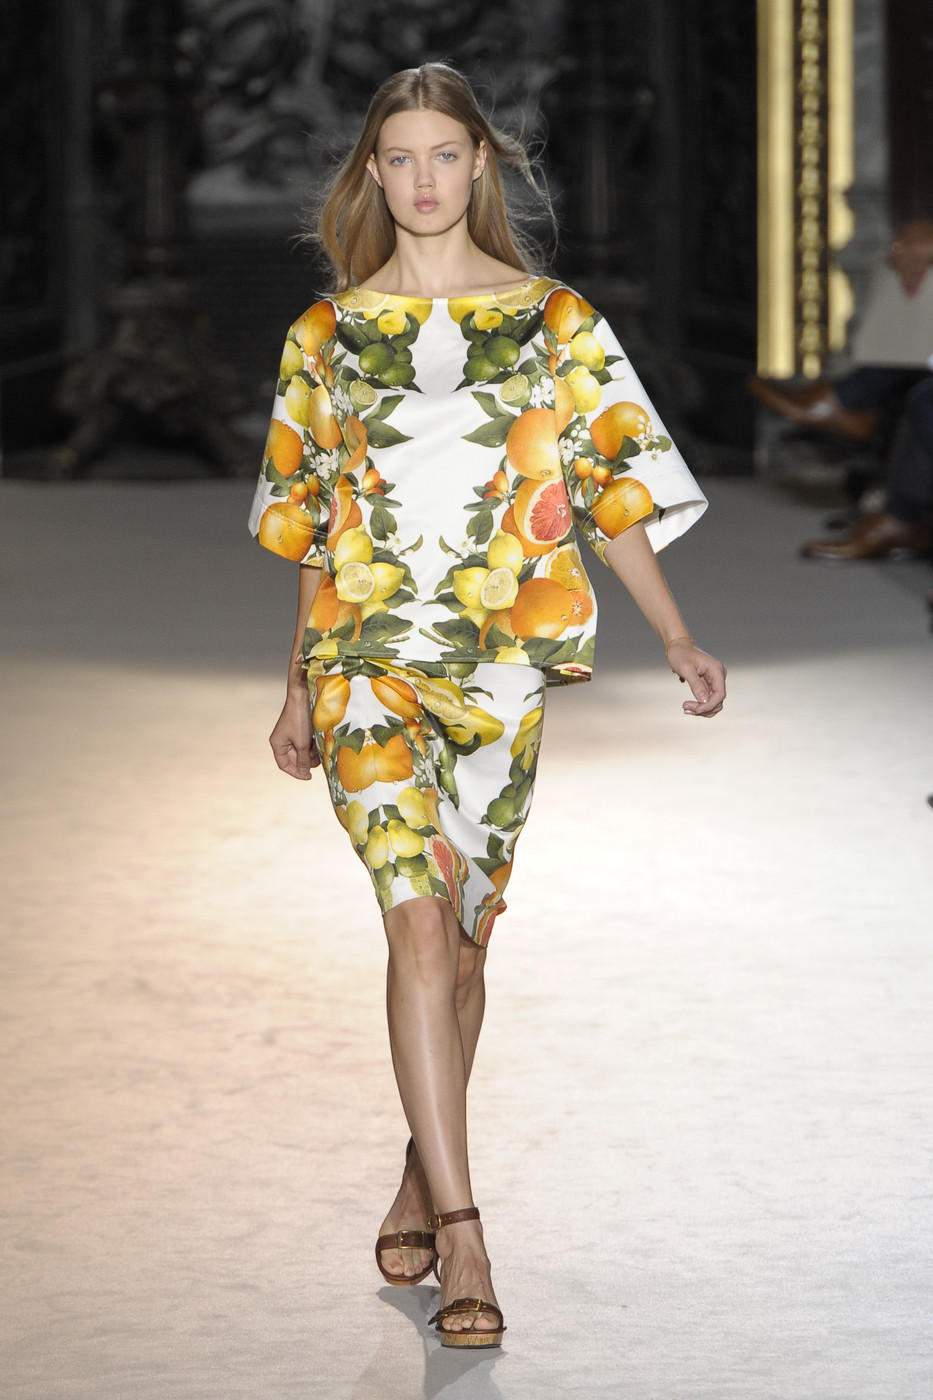 via fashioned by love | Stella McCartney Spring/Summer 2011 | floral trend